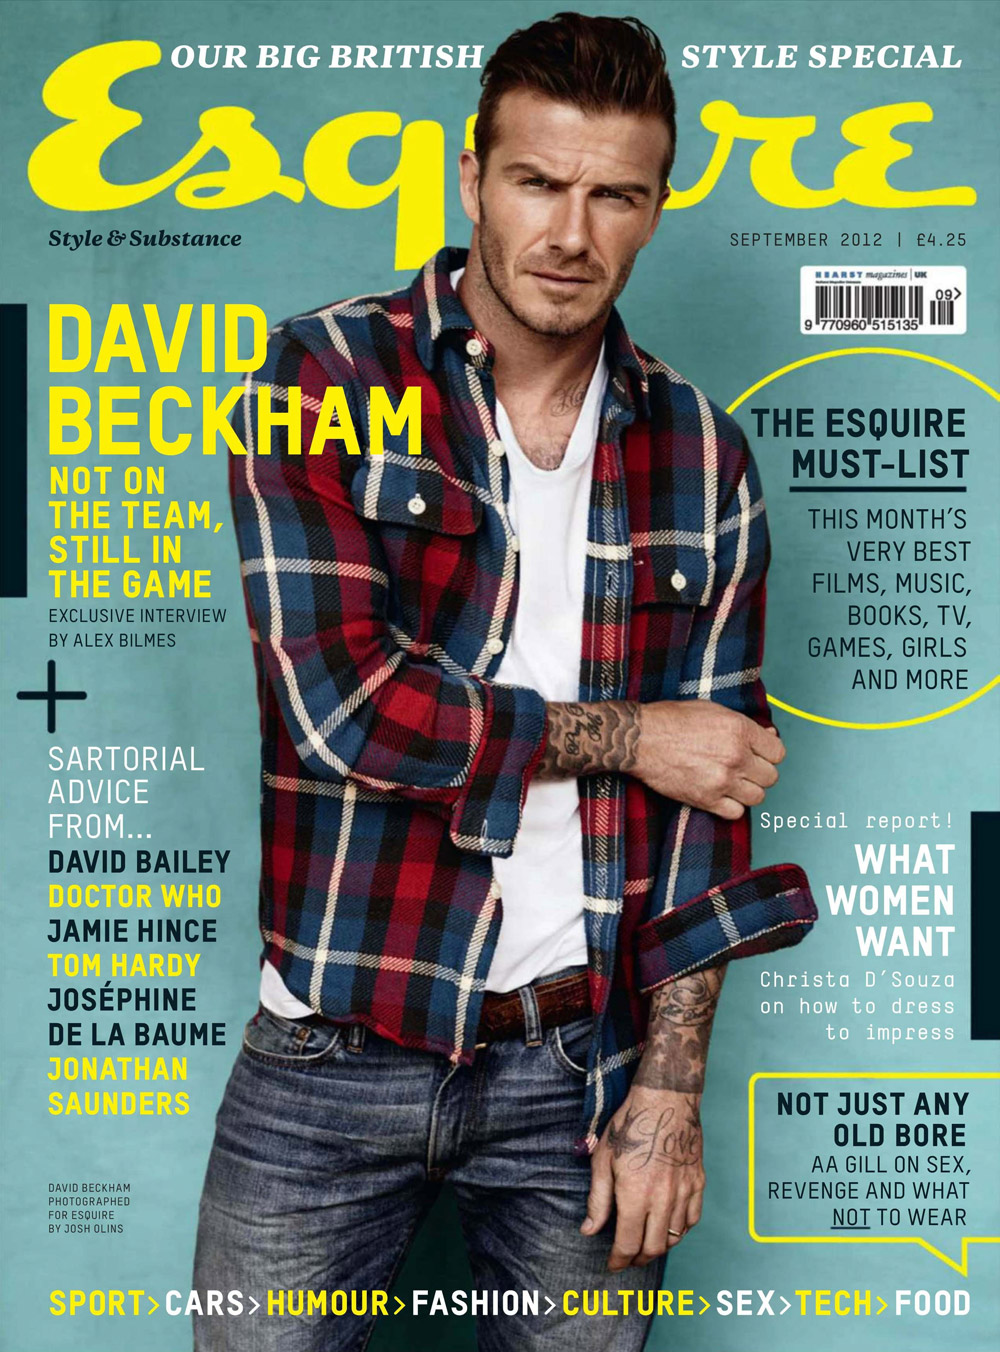 Cover Story For Wired Uk Kevin Gray S Portfolio: David Beckham For Esquire UK September 2012